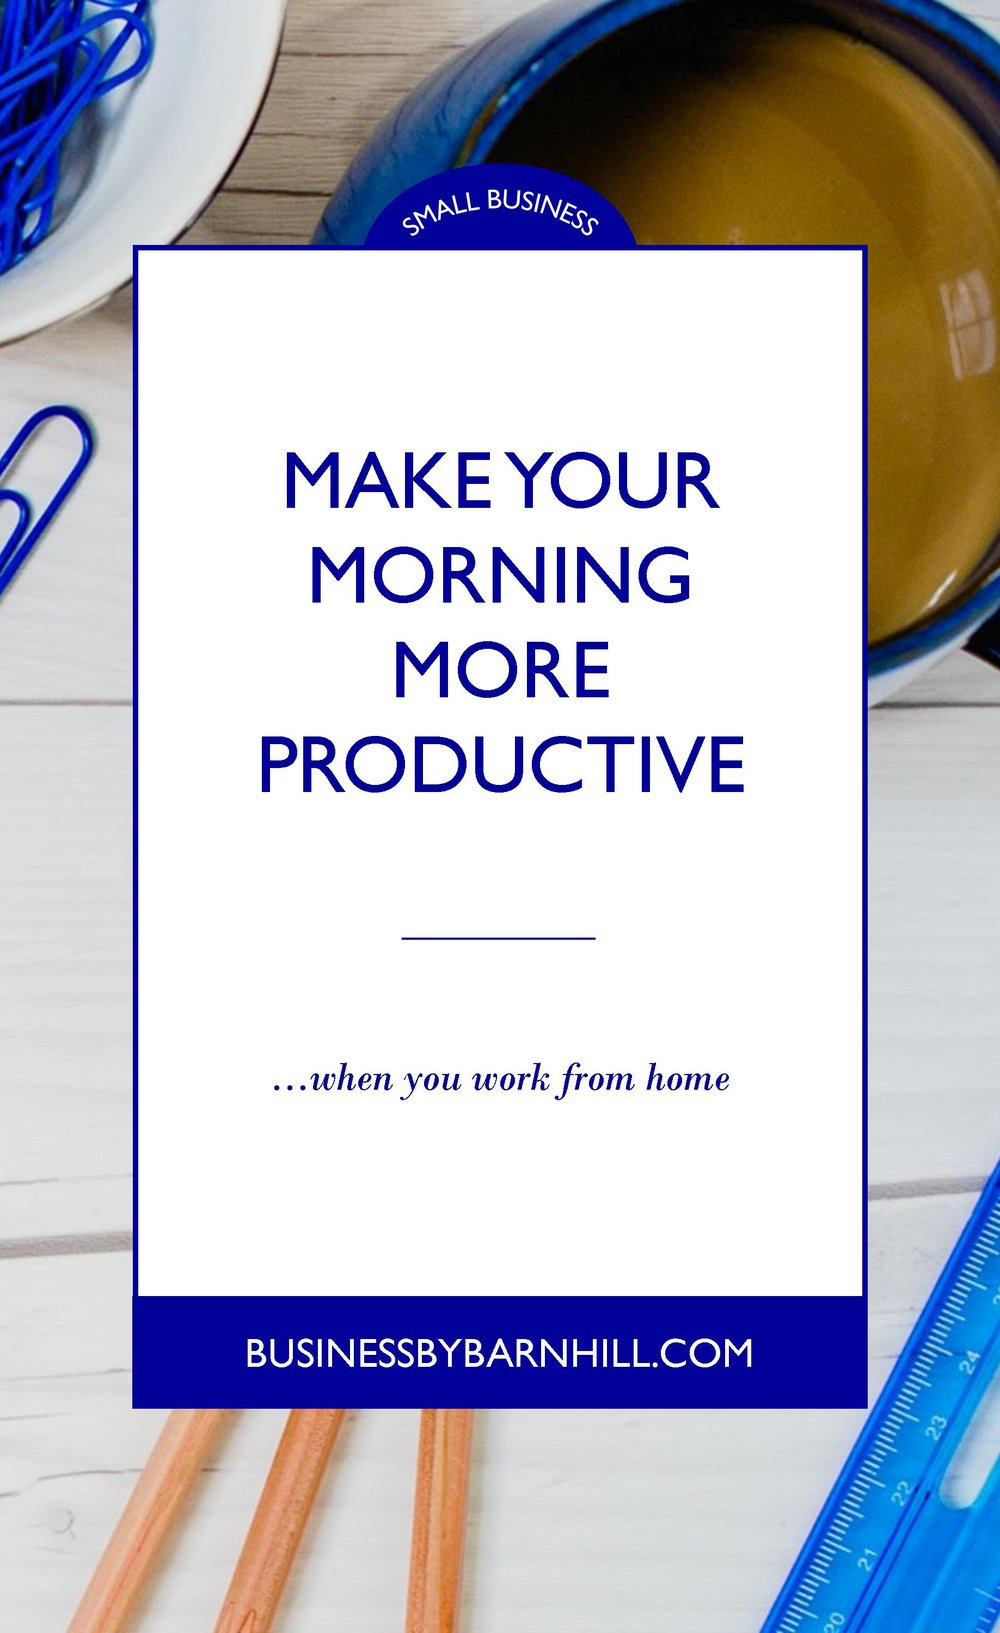 business by barnhill pinterest make your morning more productive 1.jpg